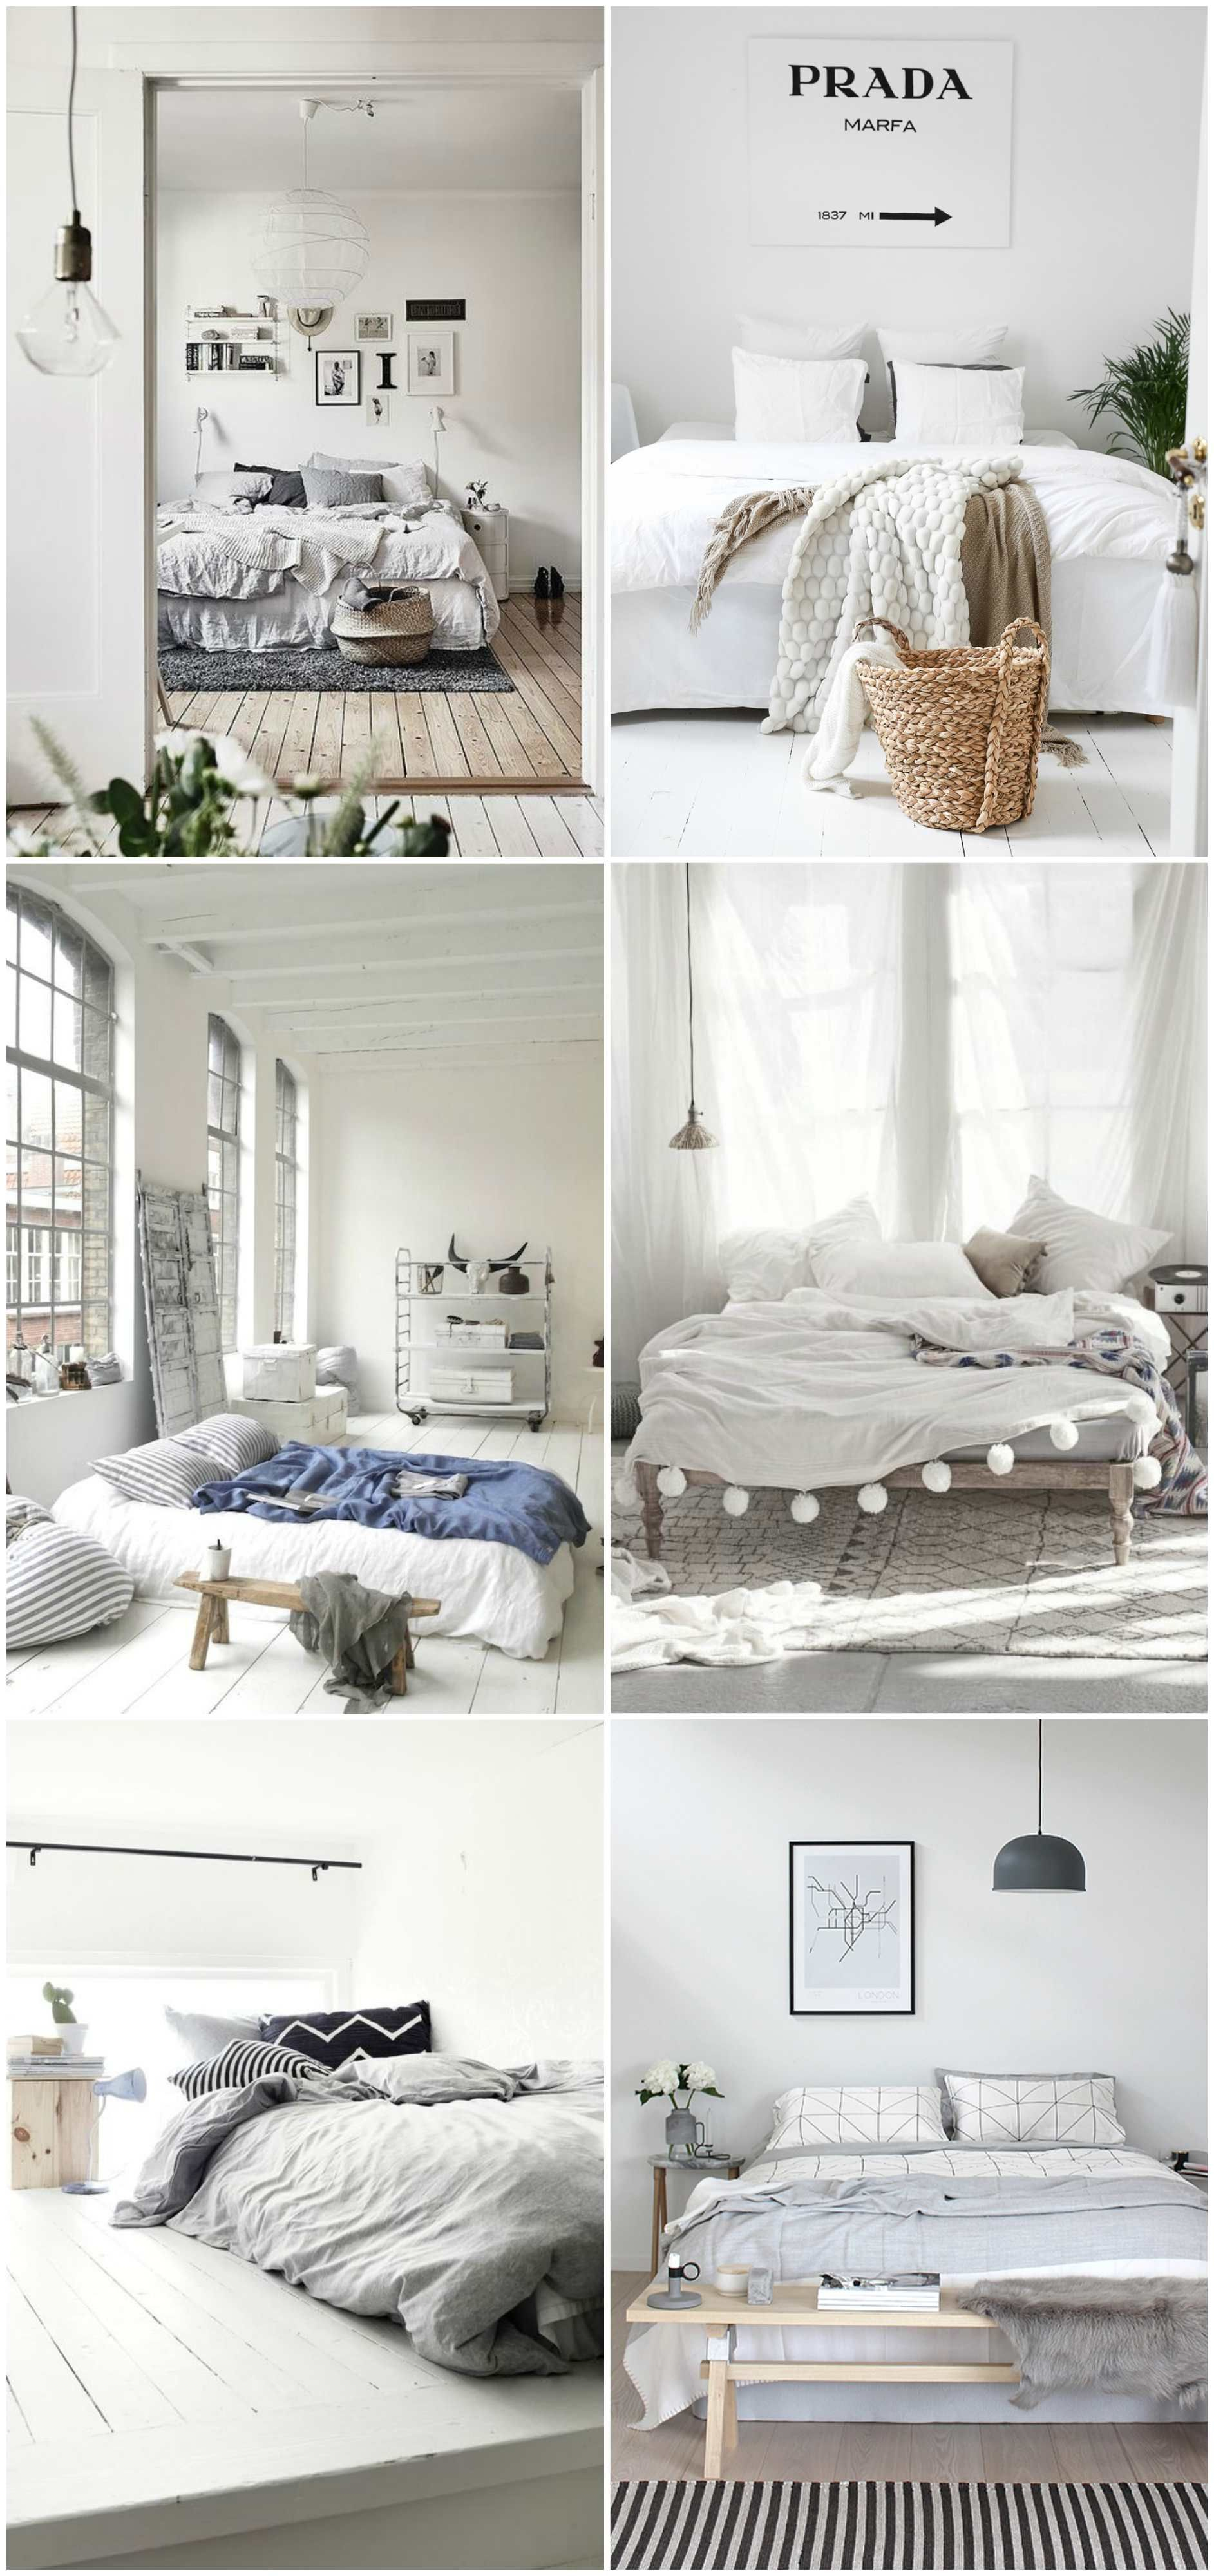 Minimalist Bedroom Ideas Minimalist Bedroom Inspiration  Minimalist Bedroom Minimalist